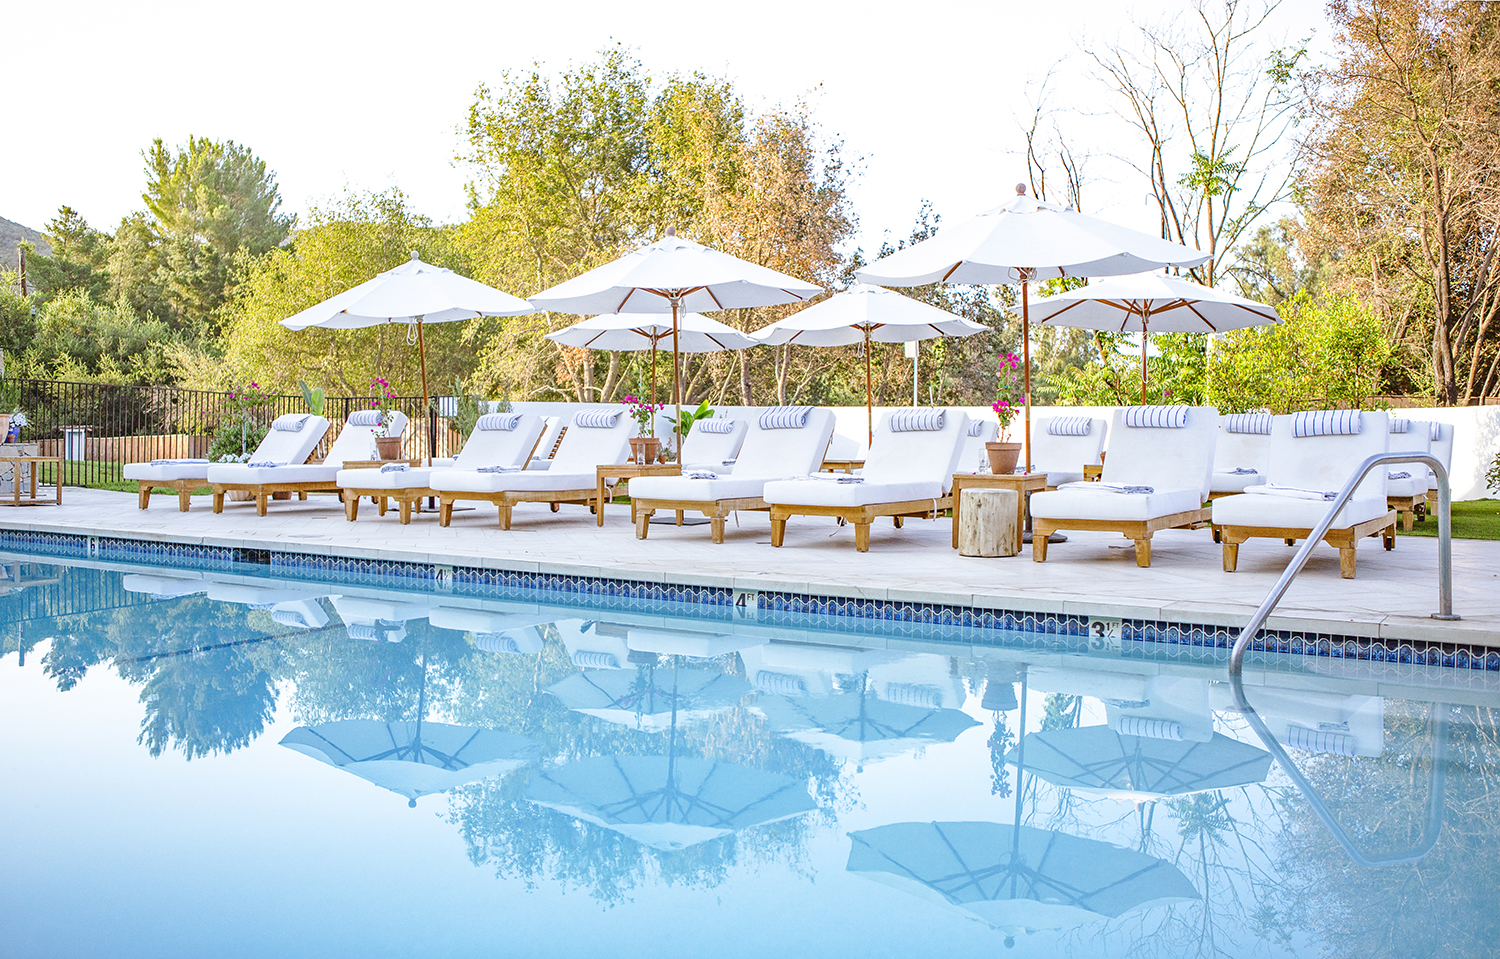 Spa guests can order lunch and drinks at the main pool.